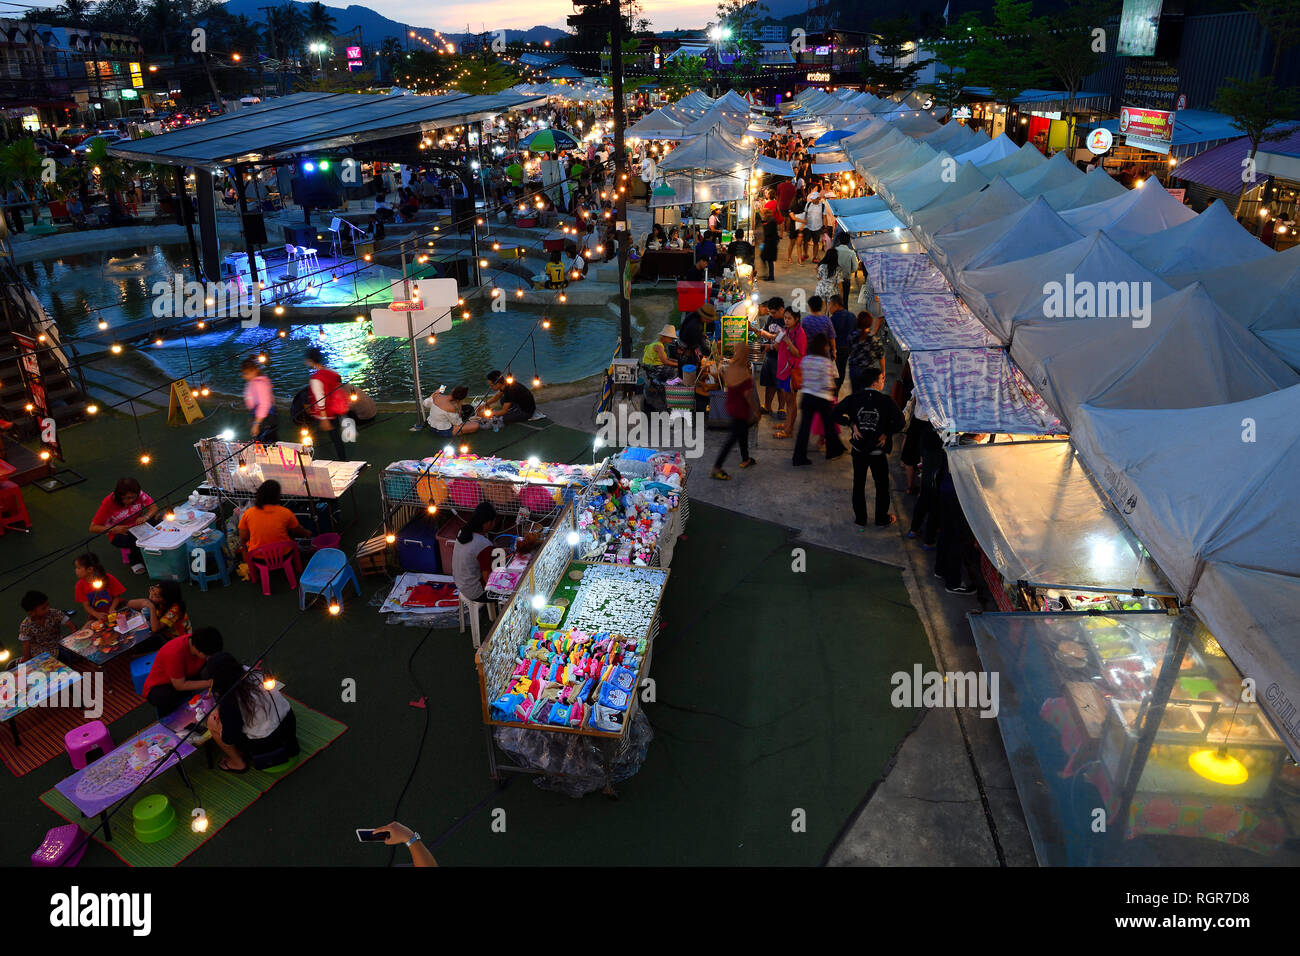 Chillva Markt, Phuket, Thailand Photo Stock